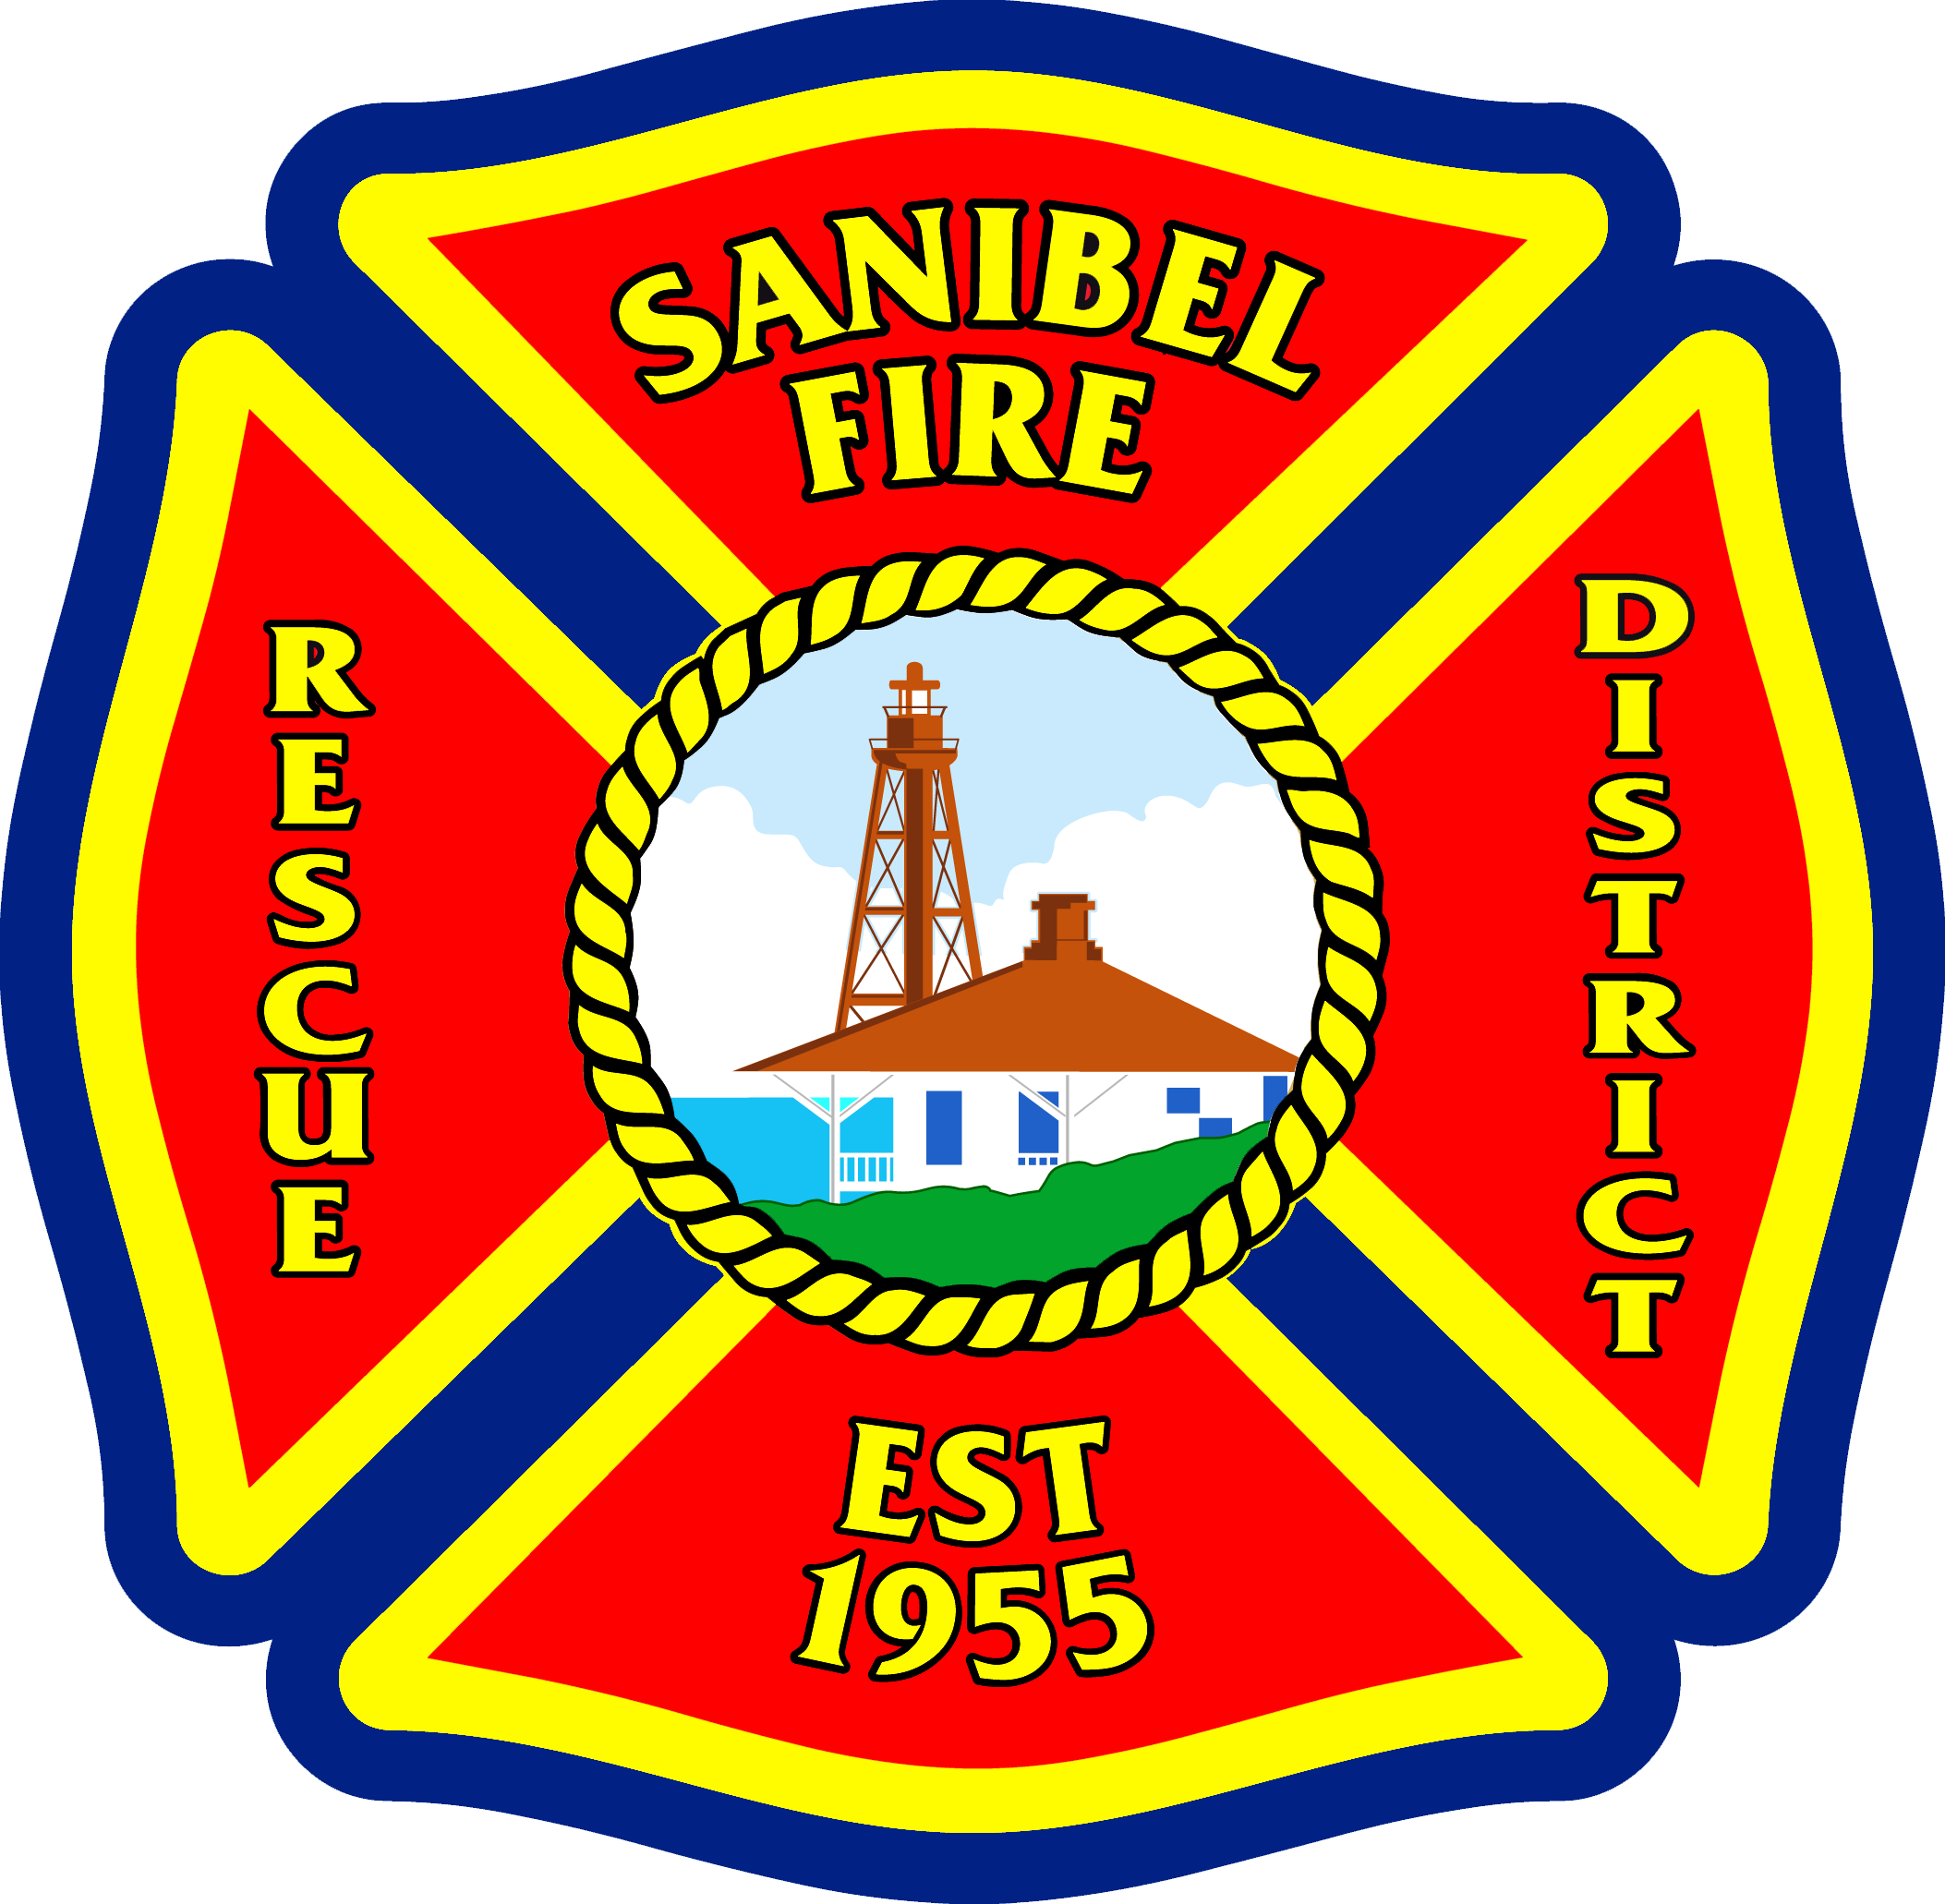 vector library download Sanibel and rescue district. 911 clipart fire emergency